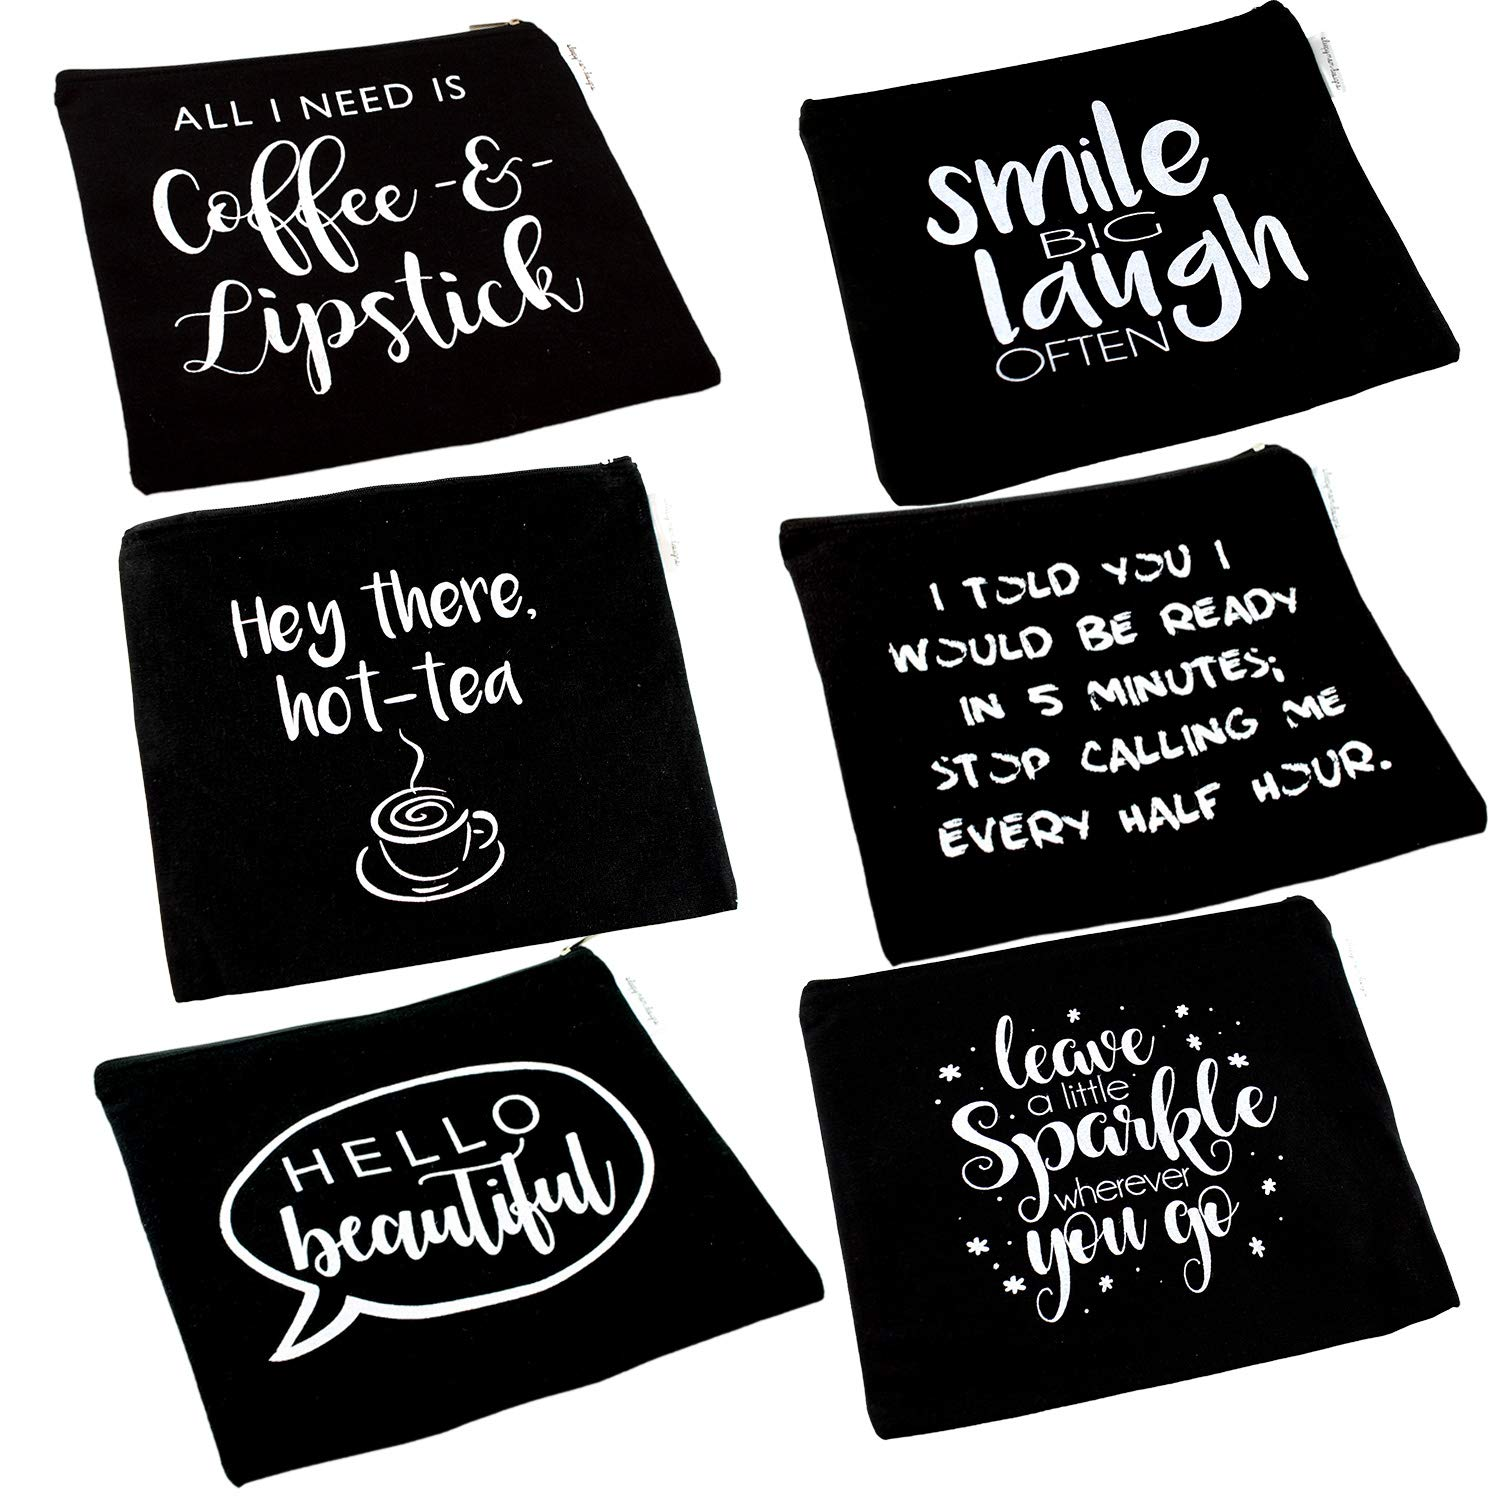 Black Canvas Cosmetic Bag and Travel Makeup Zipper Pouch Organizer Set For Wedding Bridesmaids or Direct Marketing Gifts 8.5 x 7.5 Inches (6 Pack)